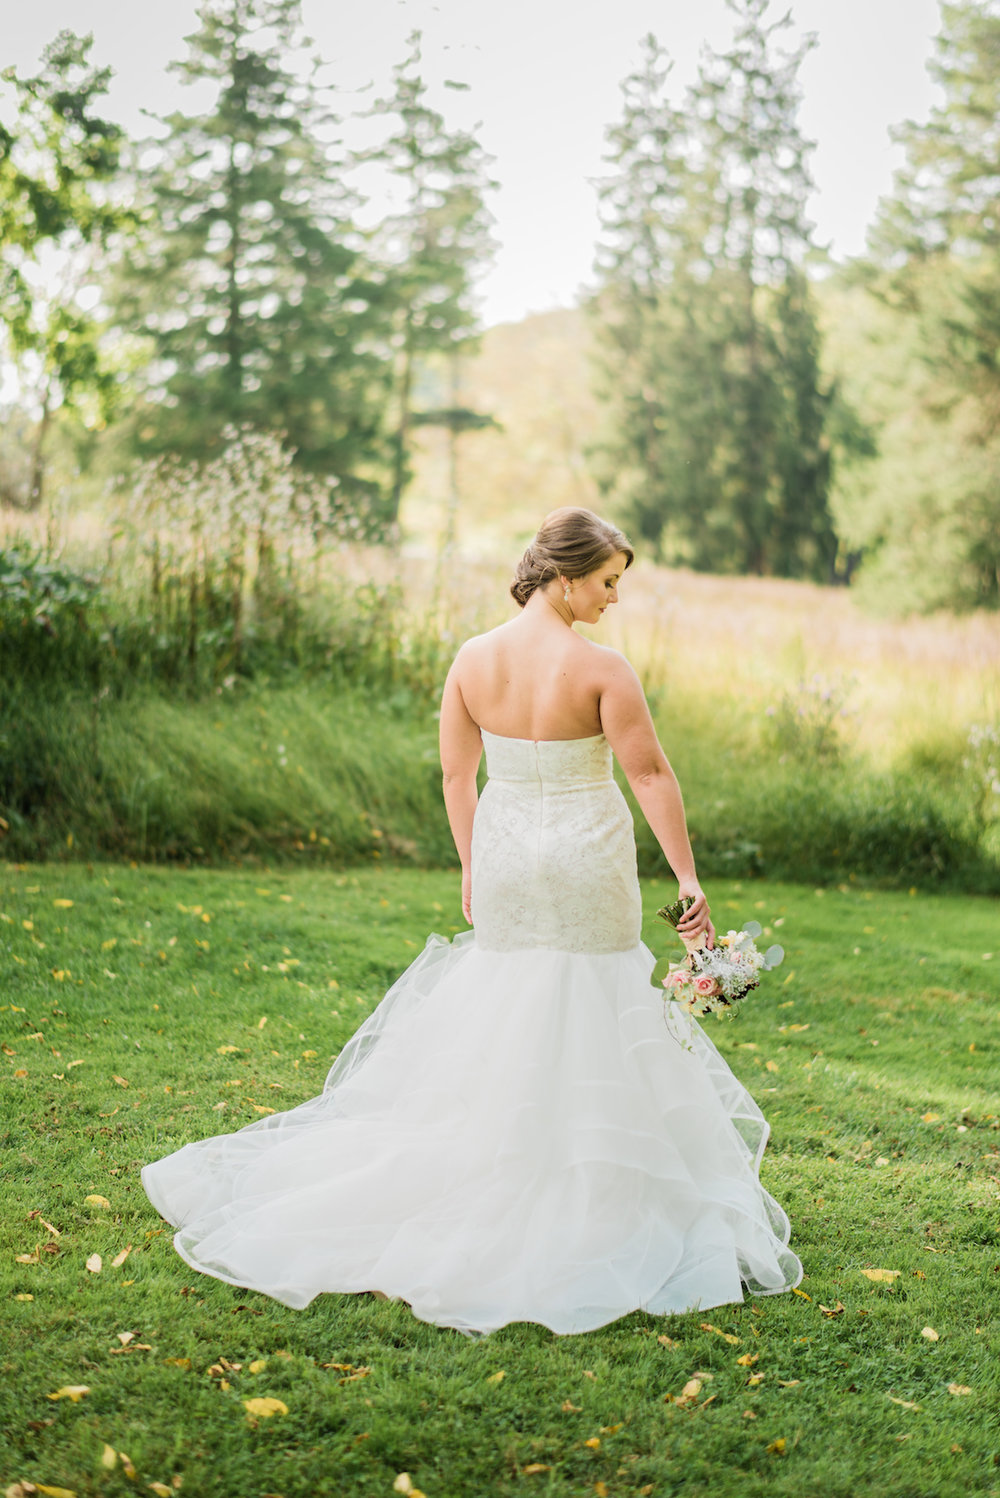 Gorgeous Mermaid Wedding Dress - A Philander Chase Knox Estate Pennsylvania Wedding